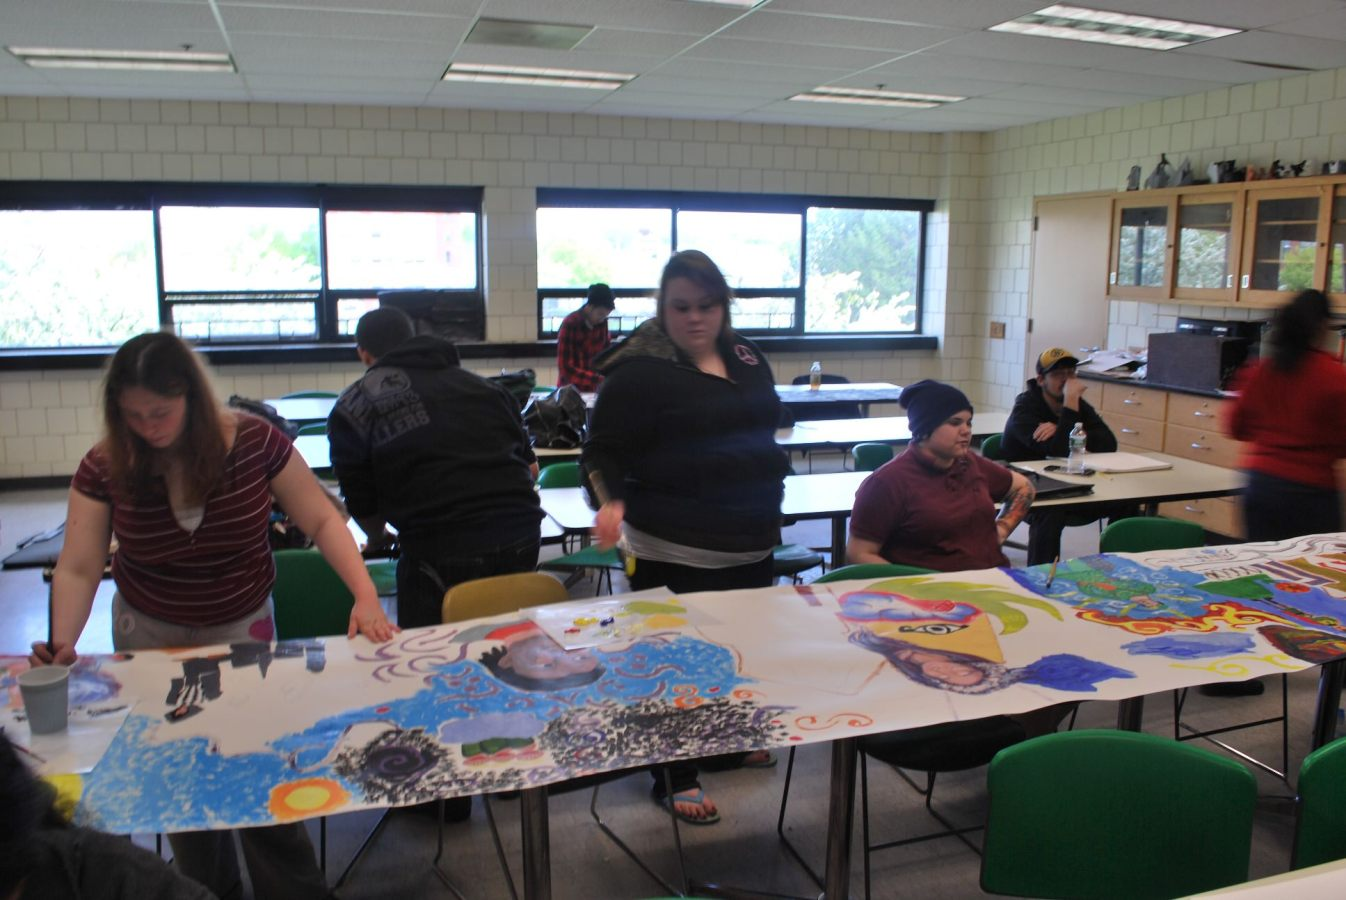 The class continues to color the mural